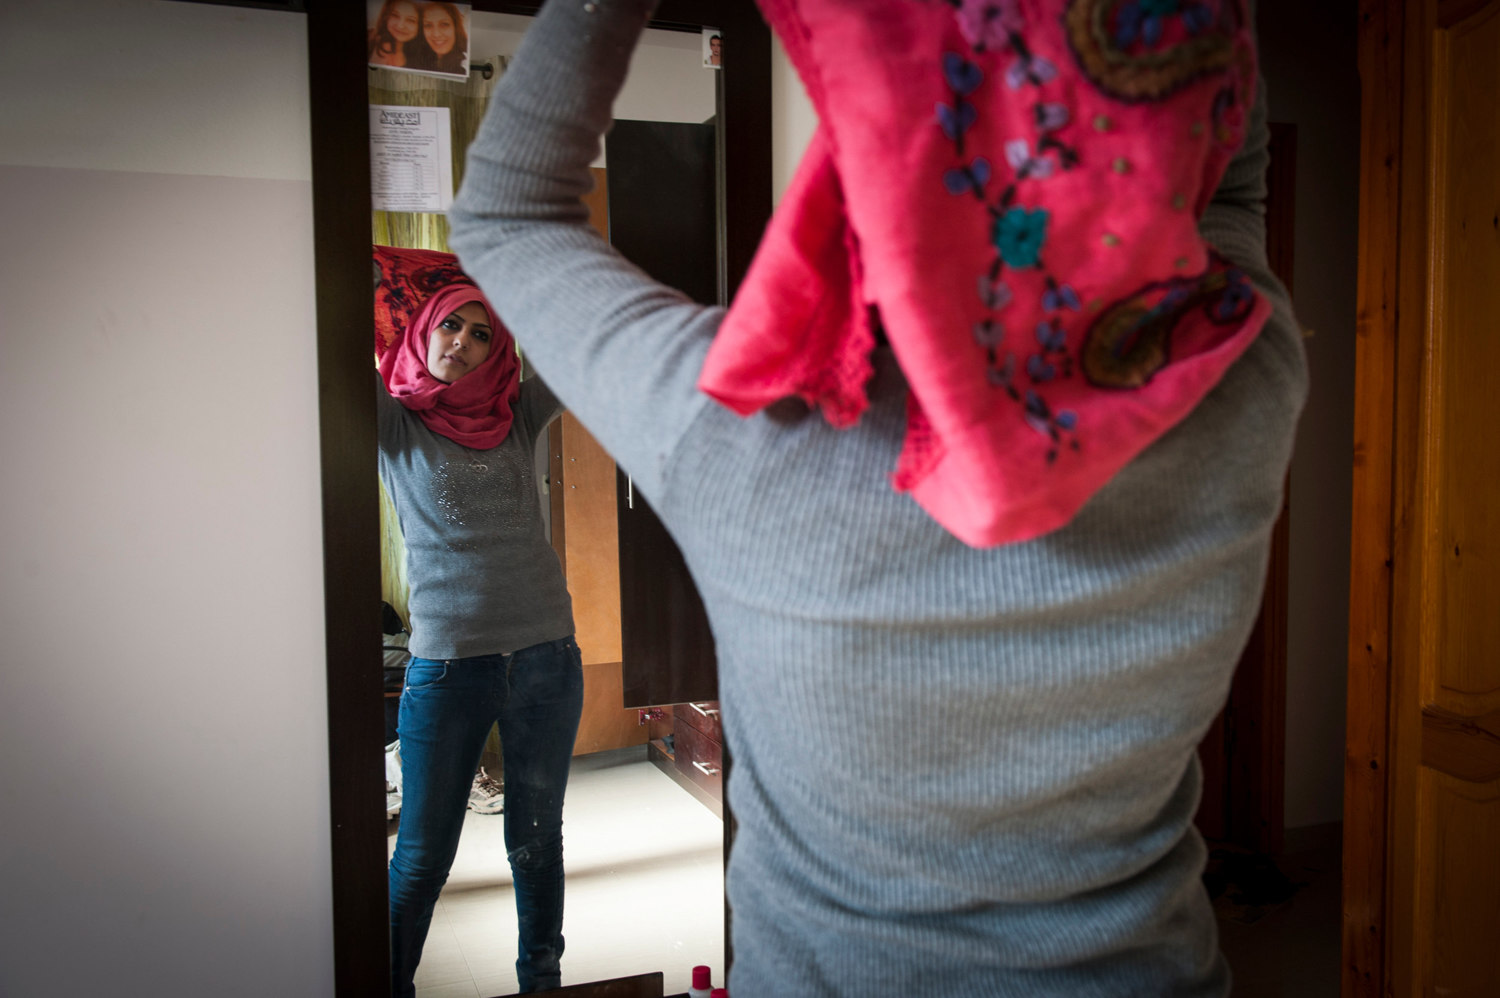 Few girls in Gaza are uncovered, here Doaa carefully does her hijab before leaving the house.